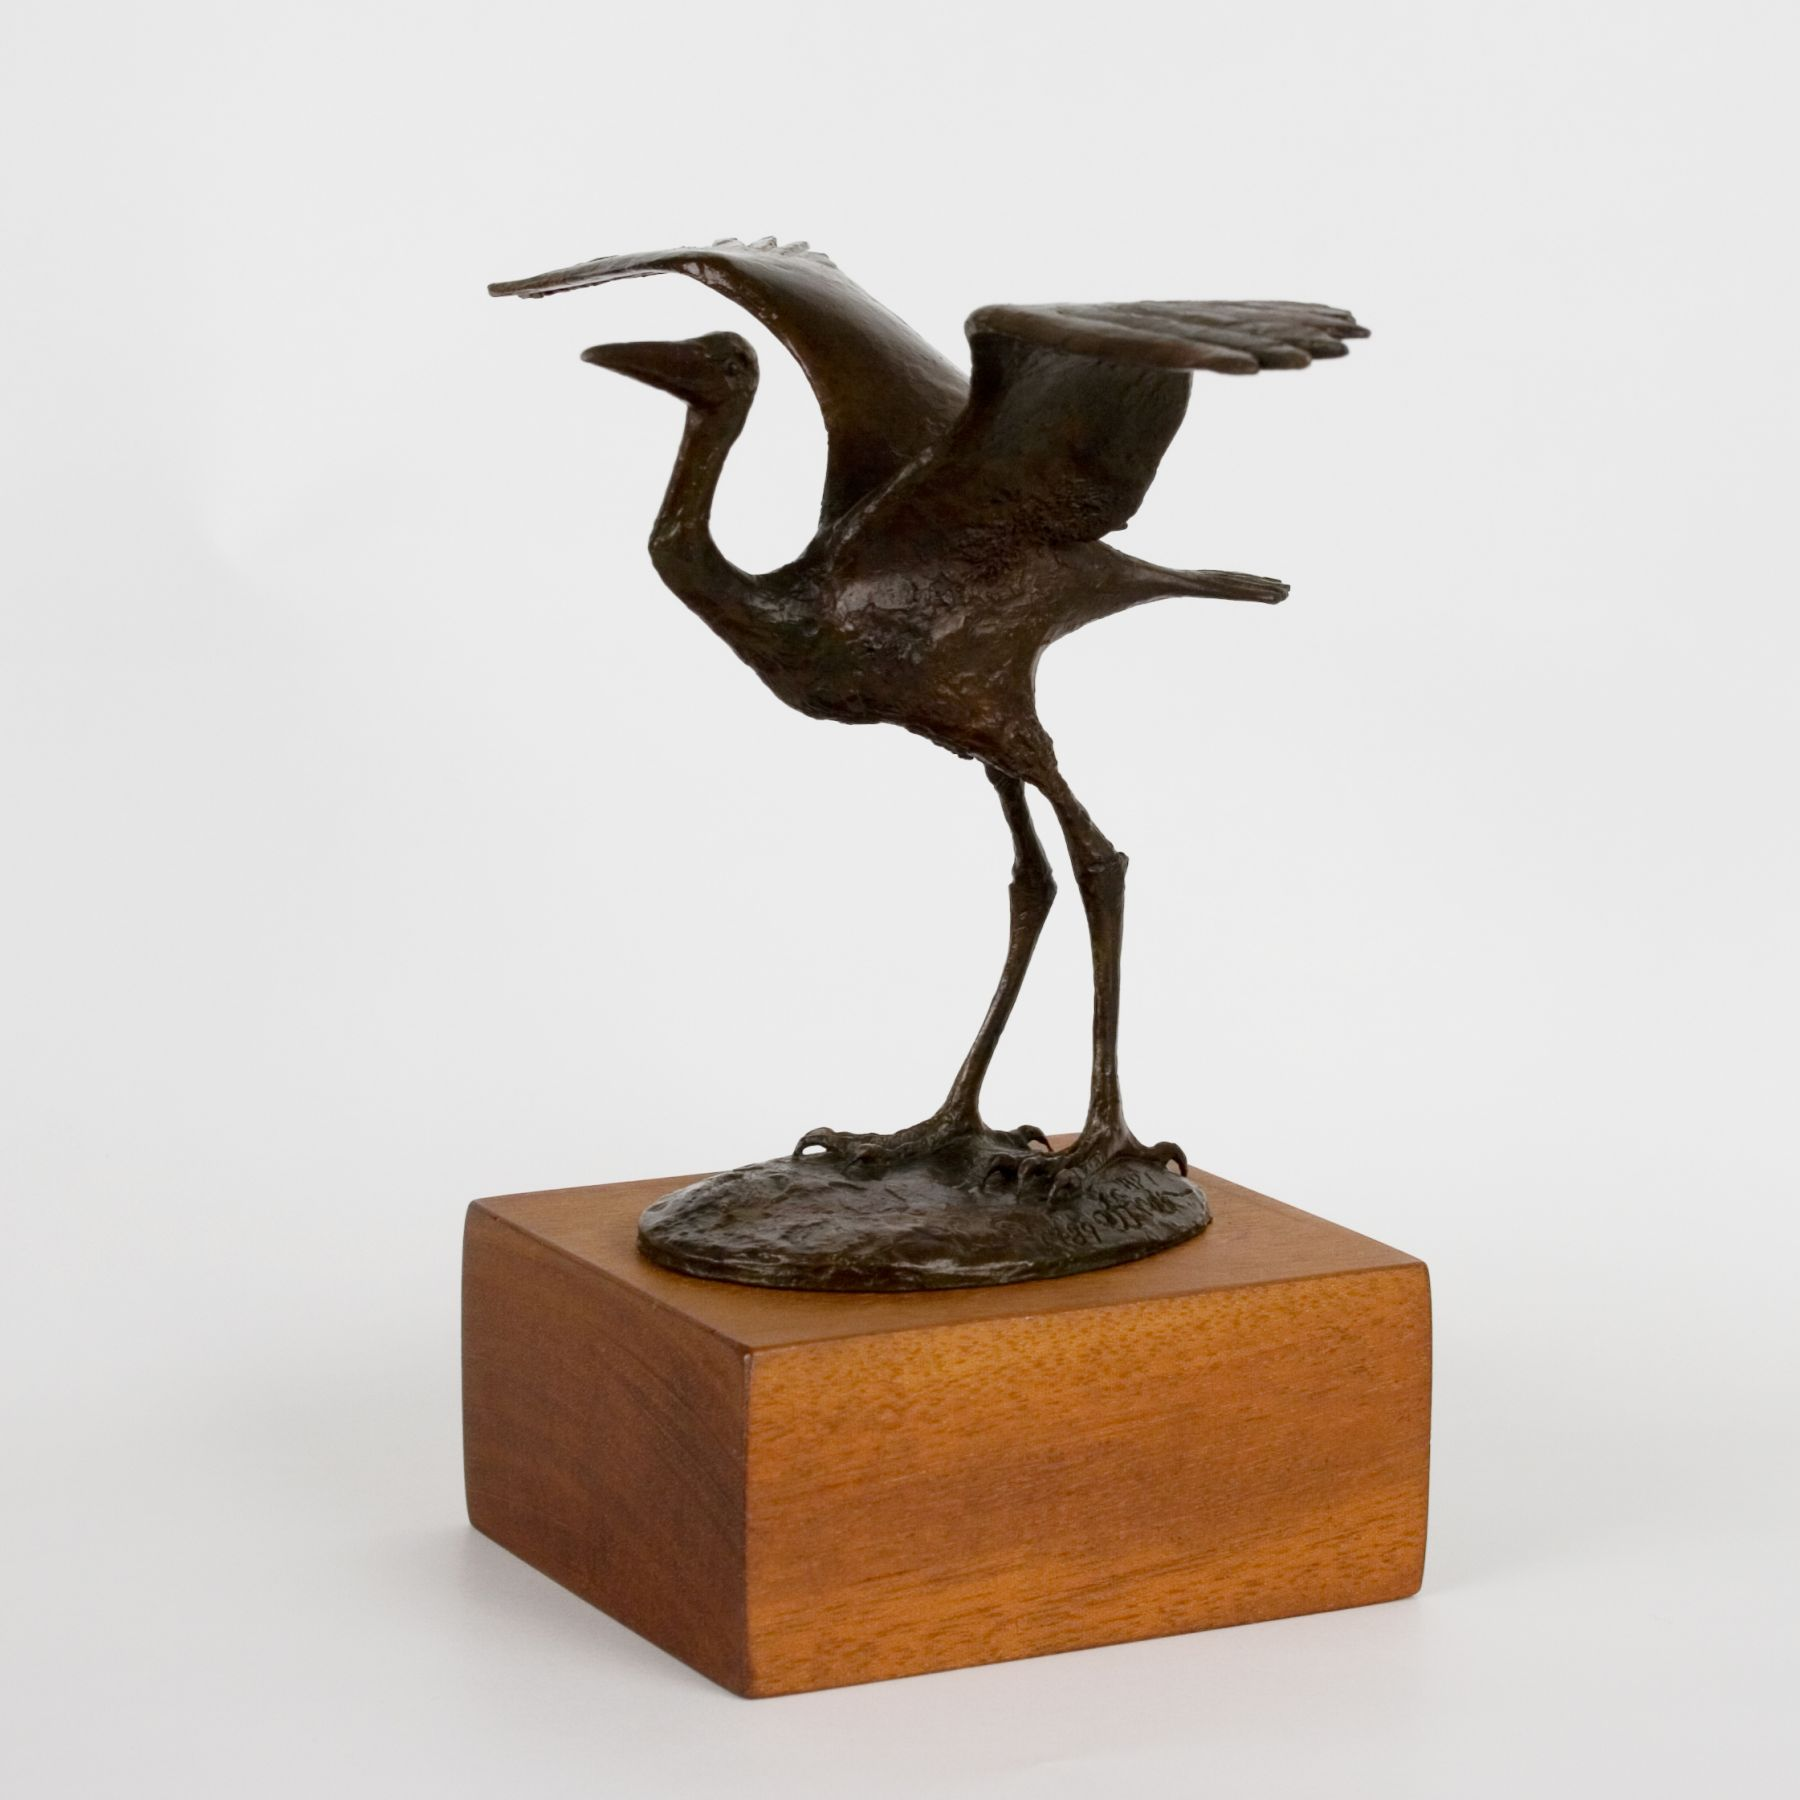 Elliot Offner, Smallest Heron, 1989, 6 x 8 1/4 x 5 inches